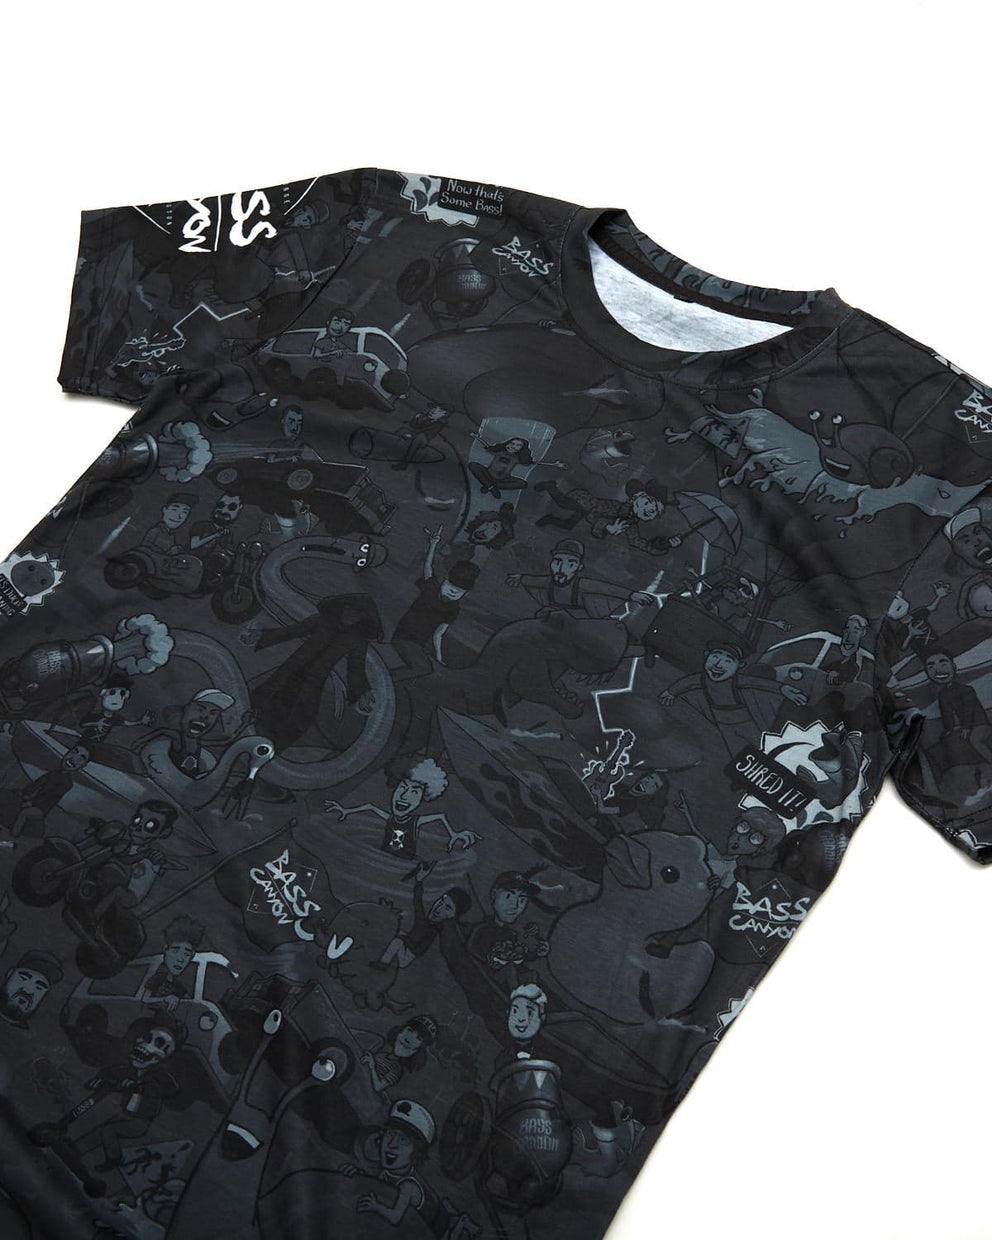 Bass Canyon 'Artists' Dye-Sublimated Tee